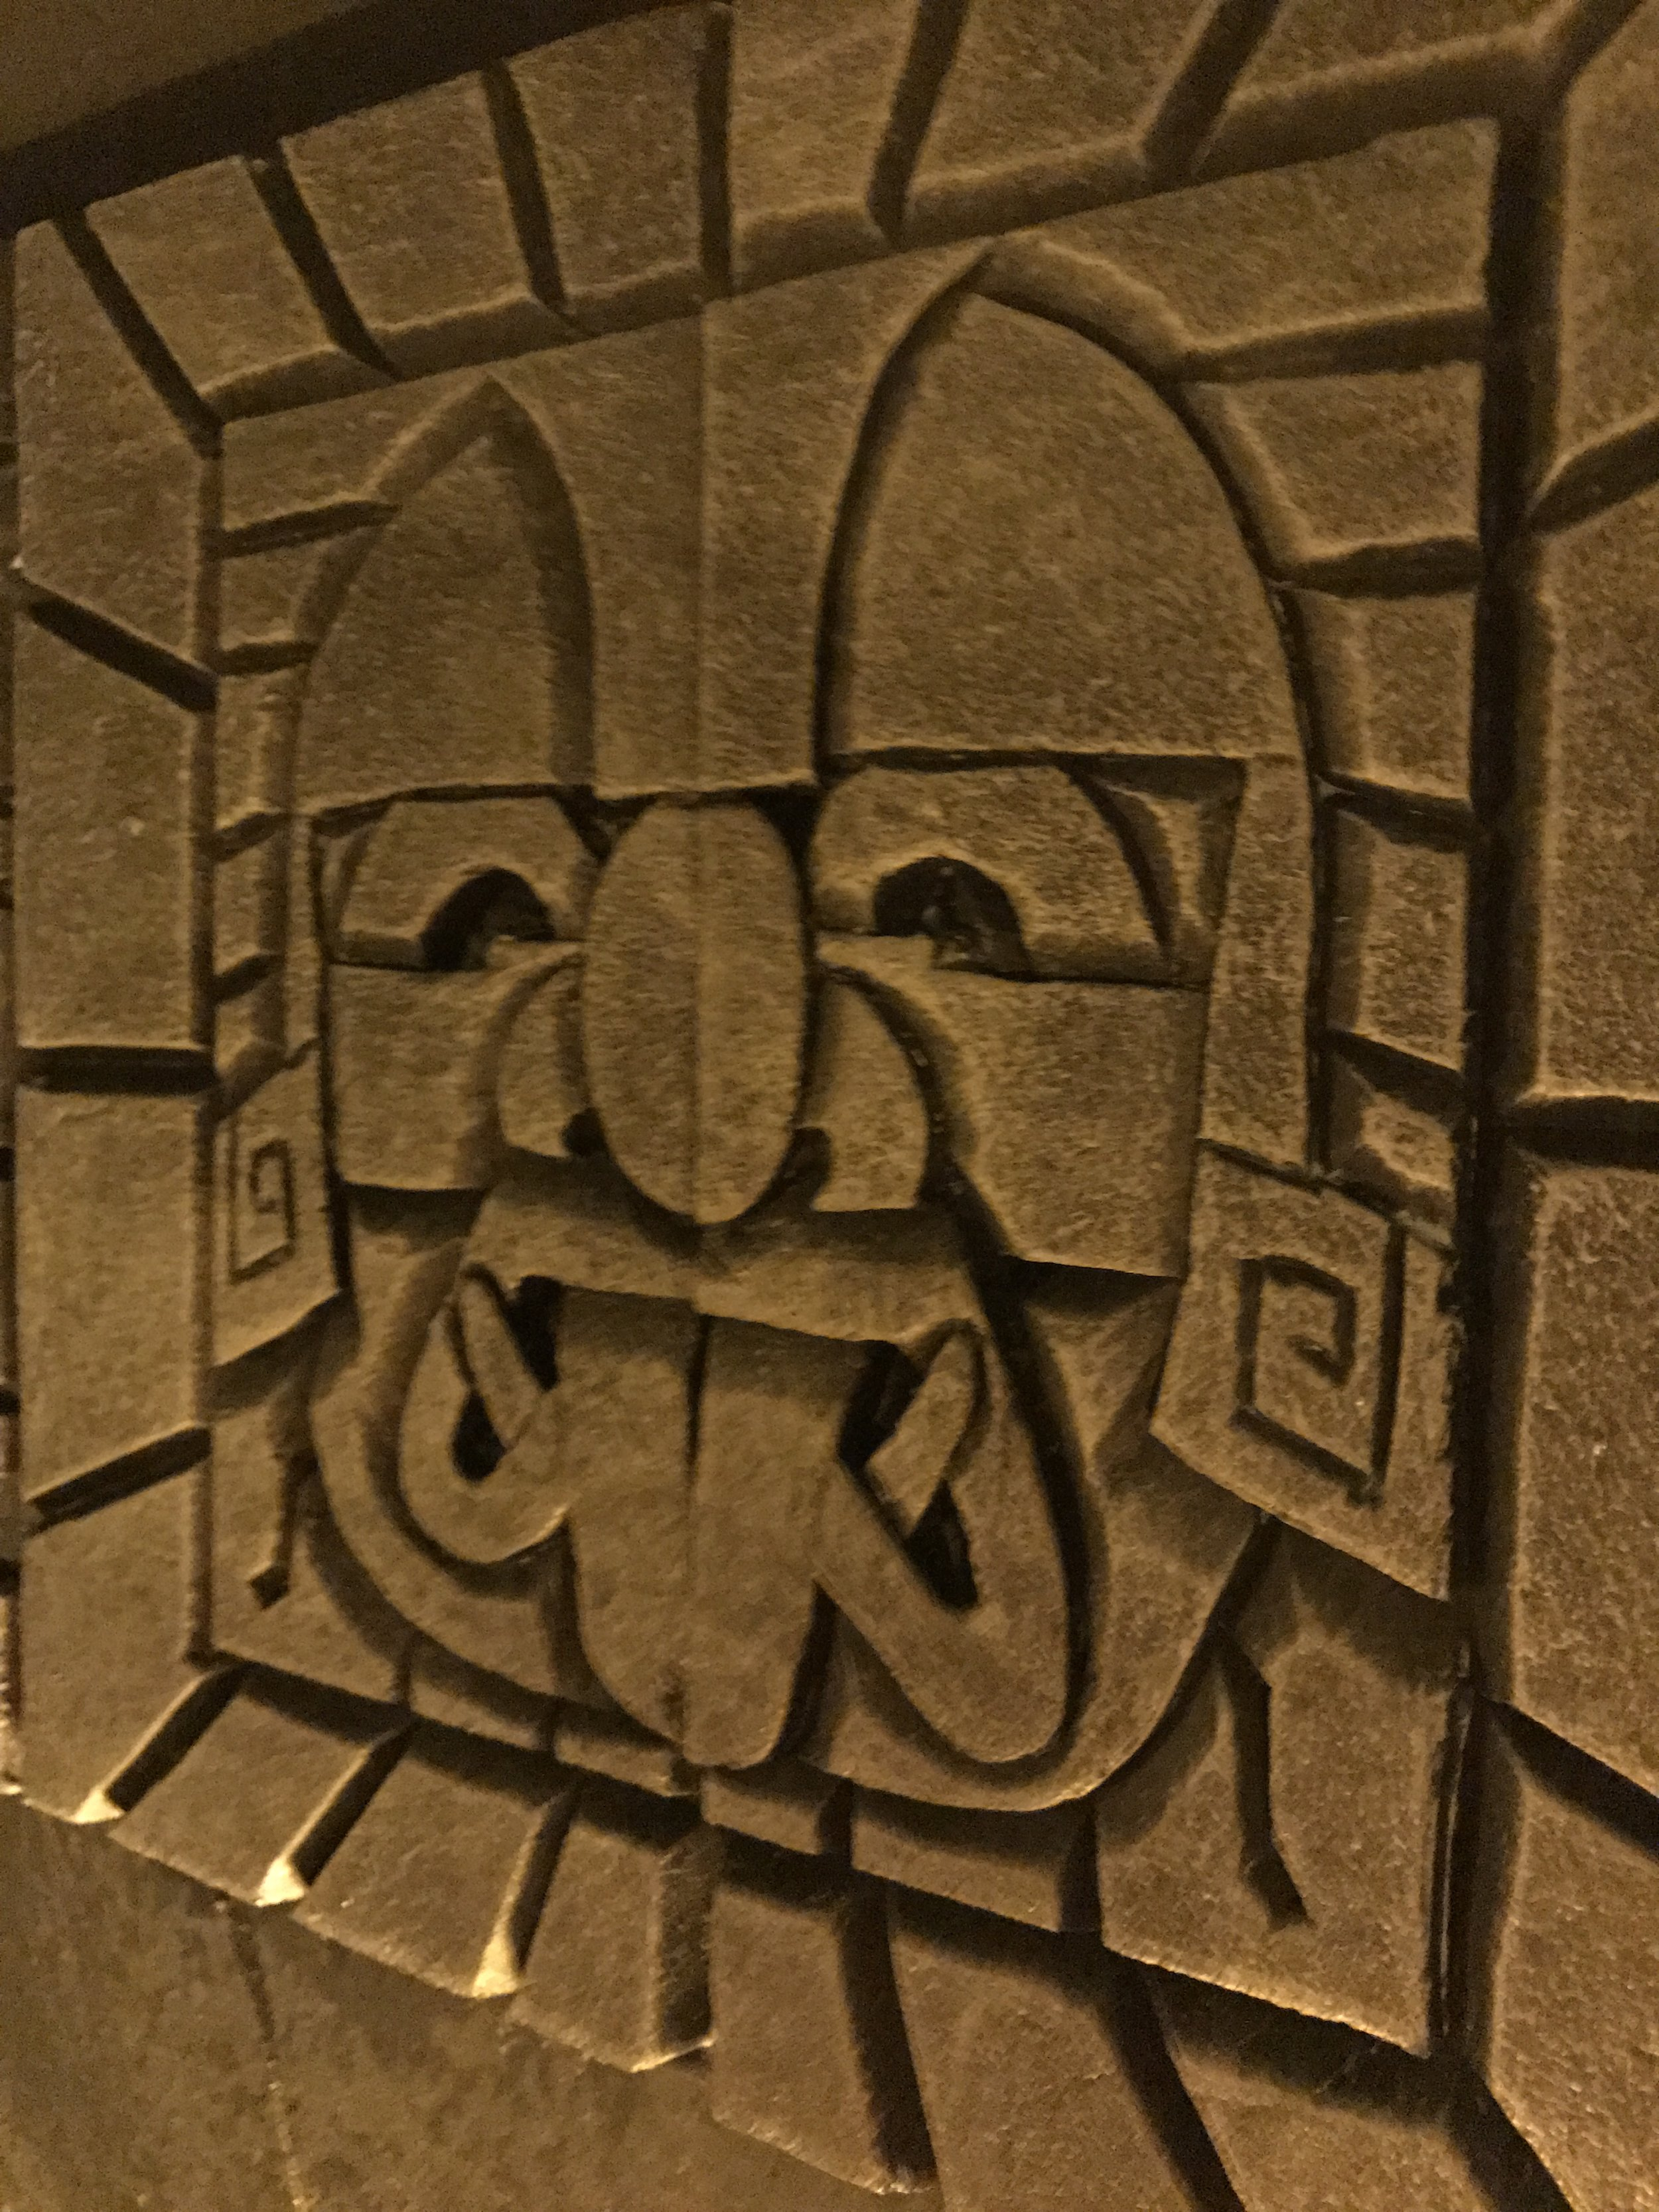 An escape room that feels like a Mayan template.